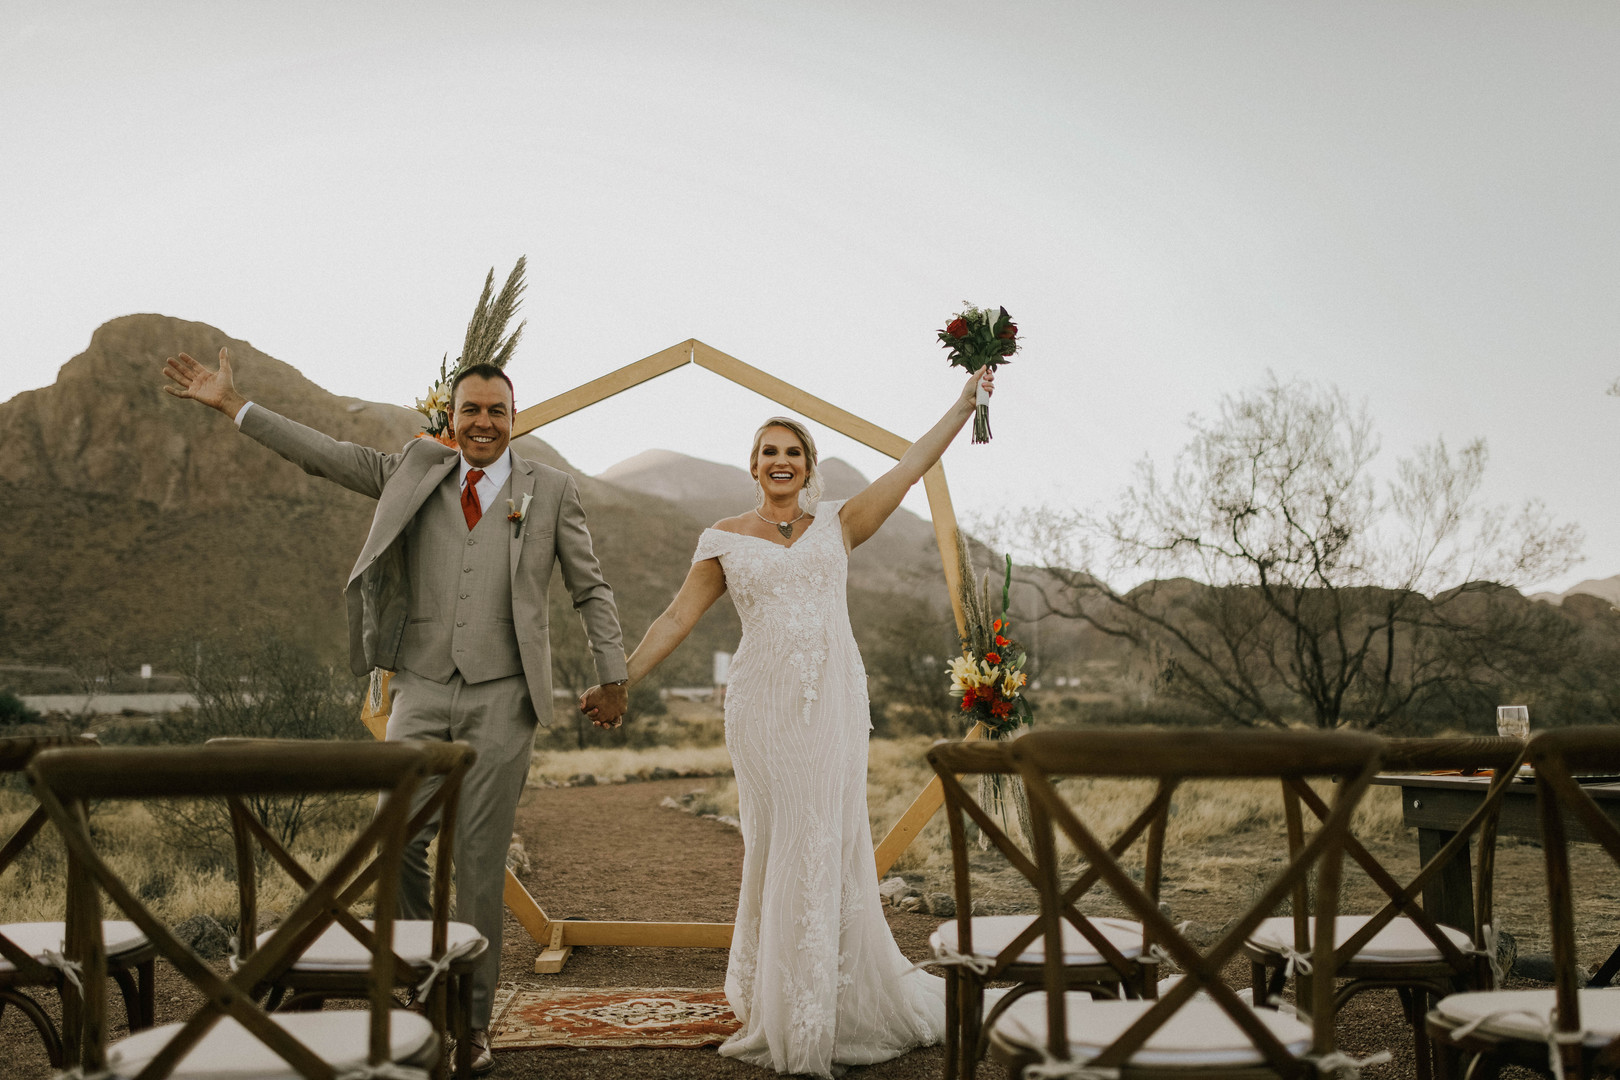 Weddings in El Paso, Texas